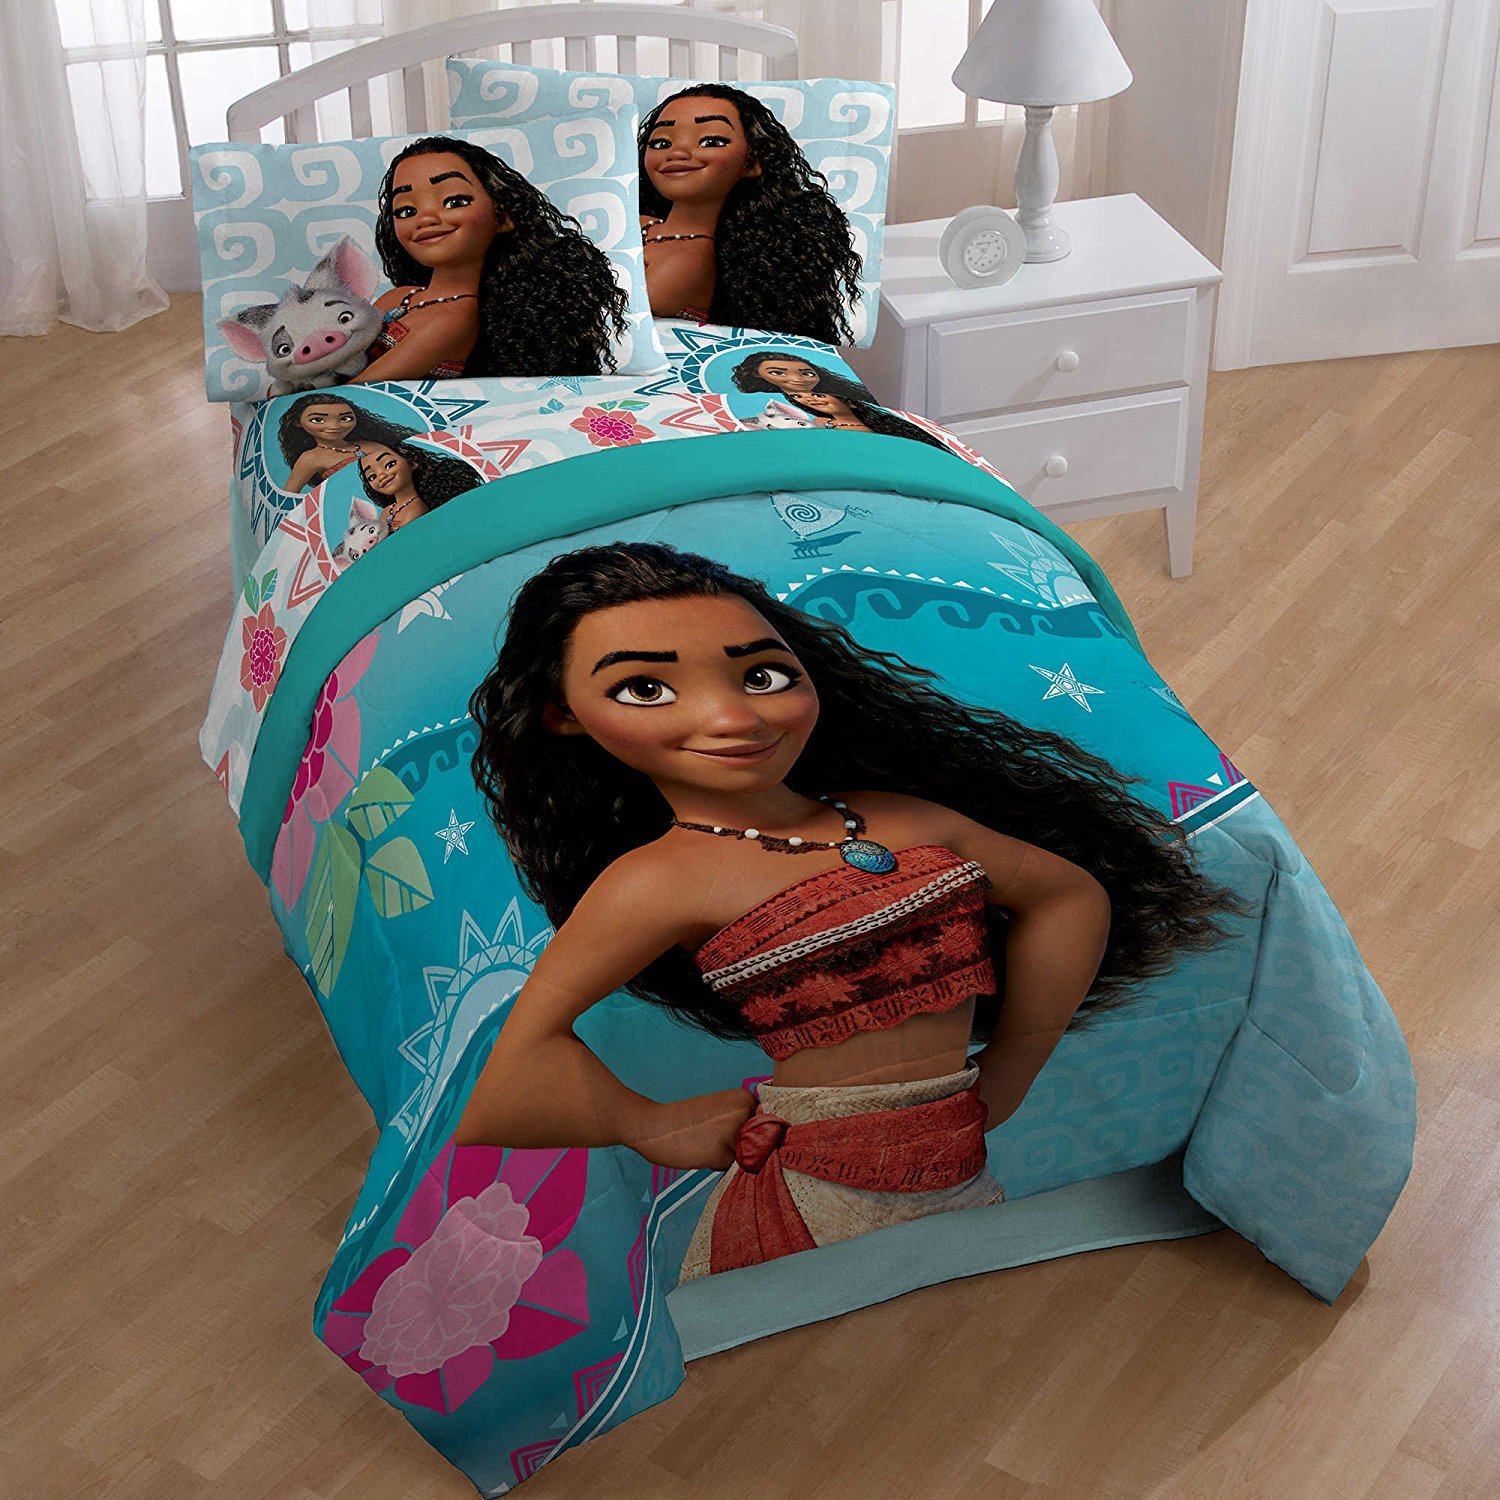 Disney Moana Comforter and Sheets Premium Bedding Set (Twin)